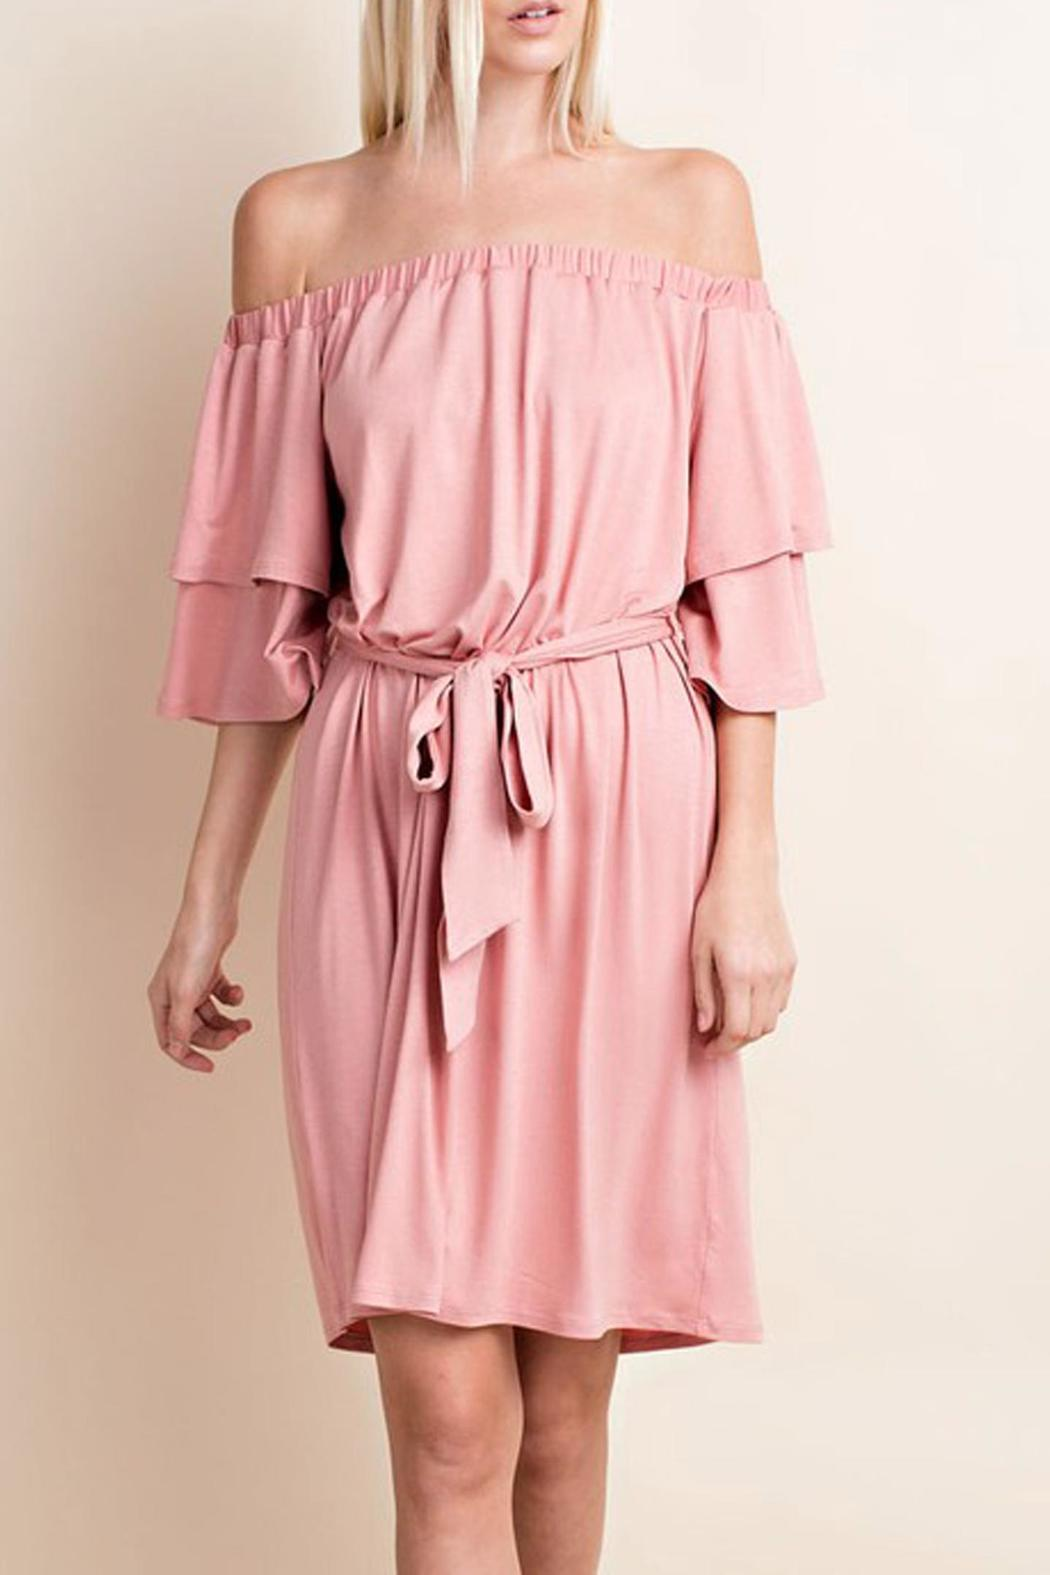 143 Story Soft Pink Dress - Main Image